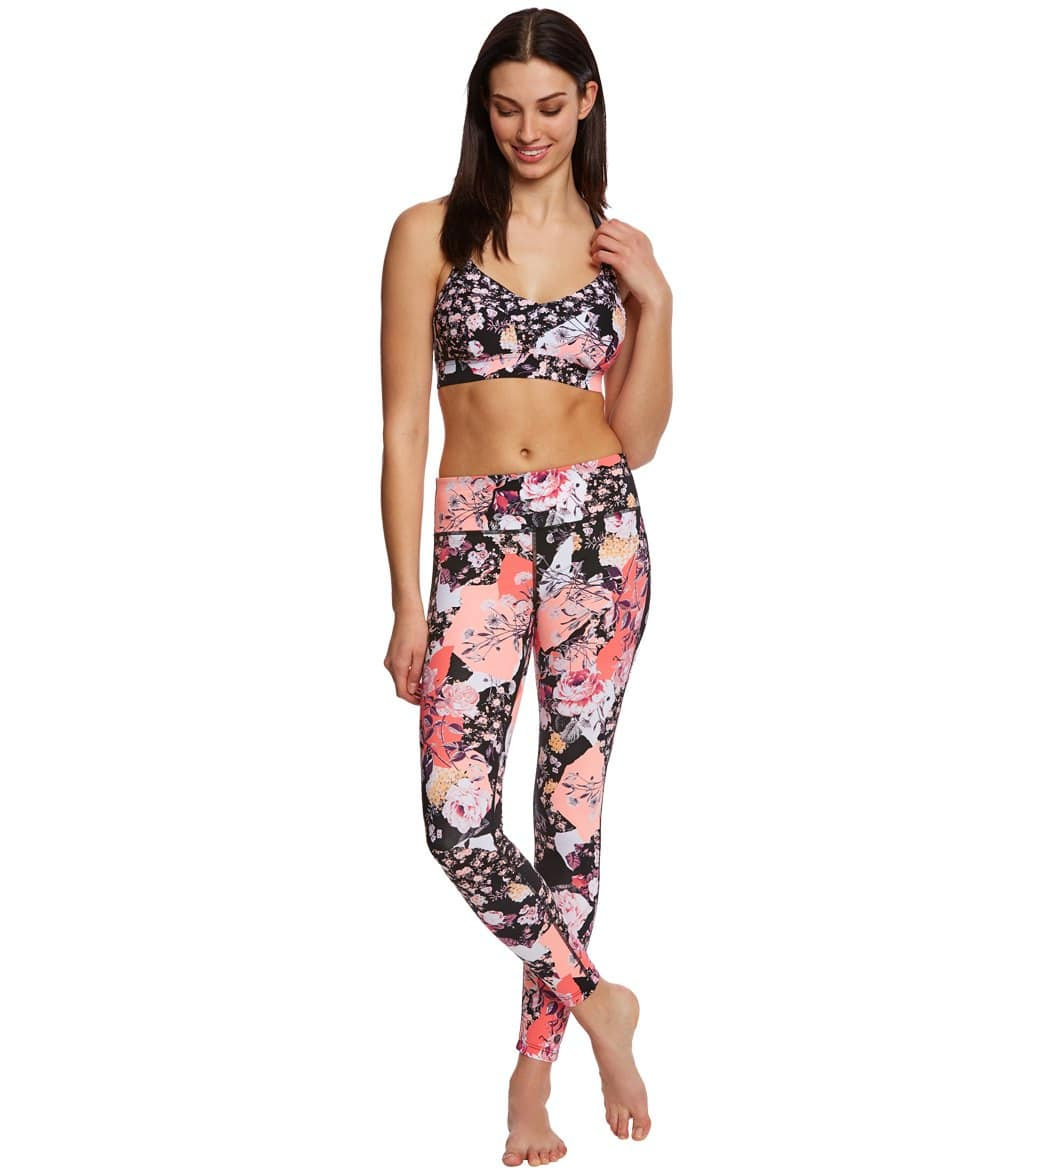 59f23eb7d6411 Seafolly Women s Ocean Rose Dance Bralette Fitness Top at SwimOutlet ...